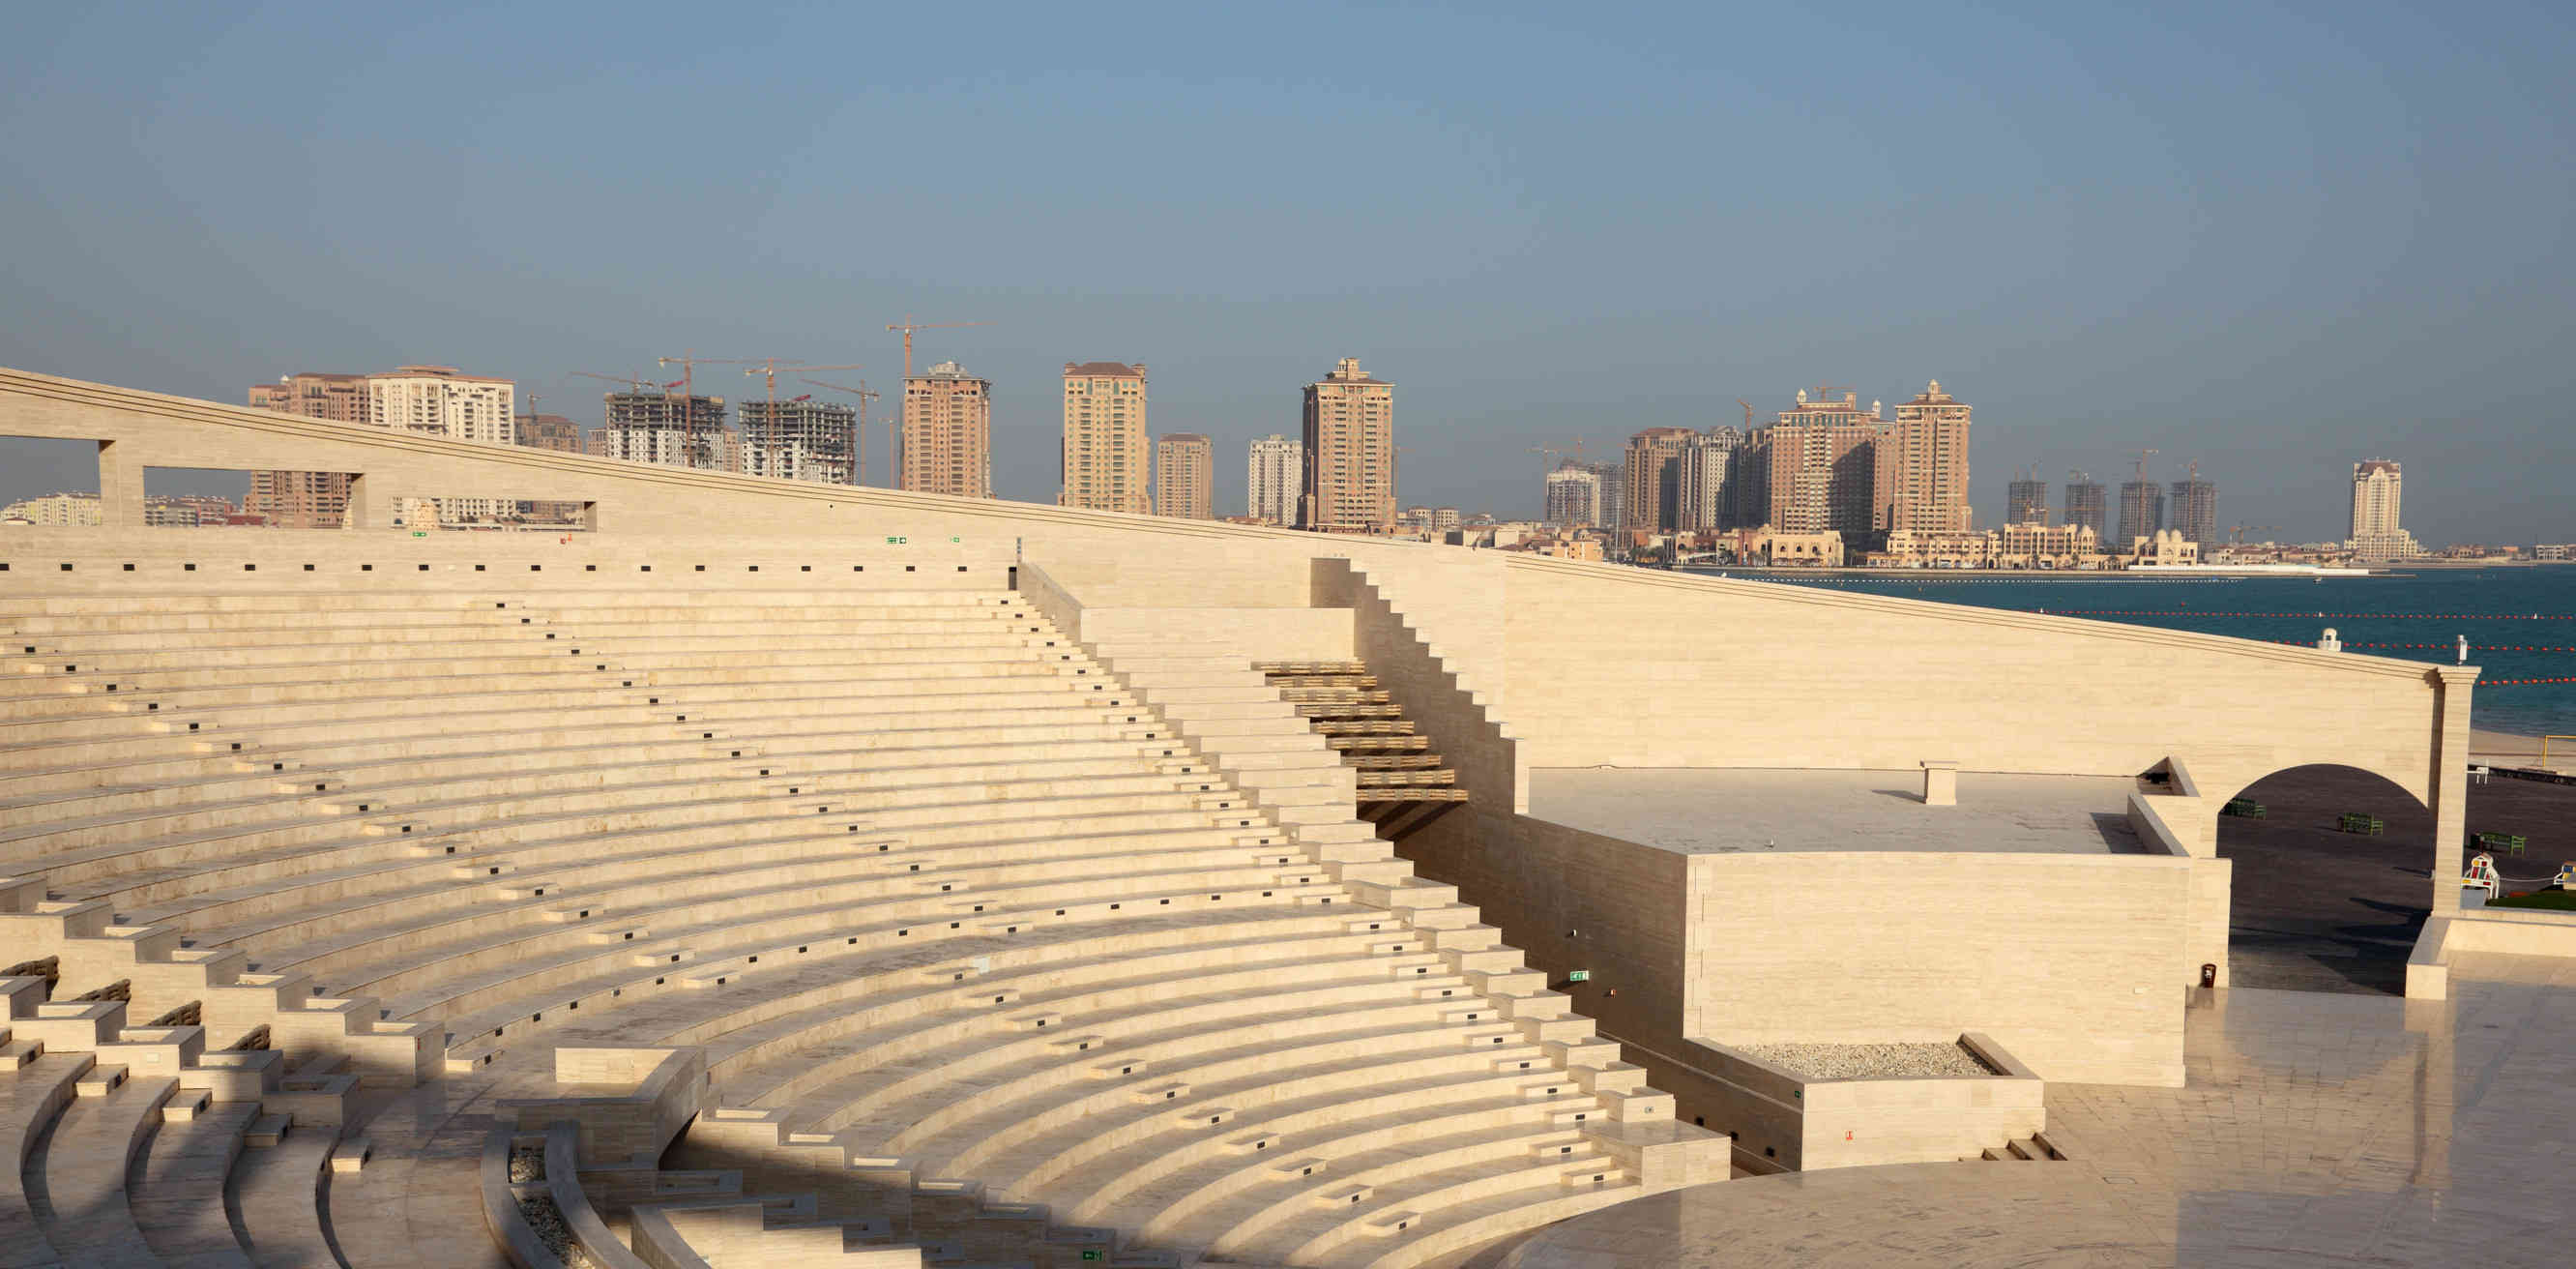 Amphitheater at the Cultural Village of Katara